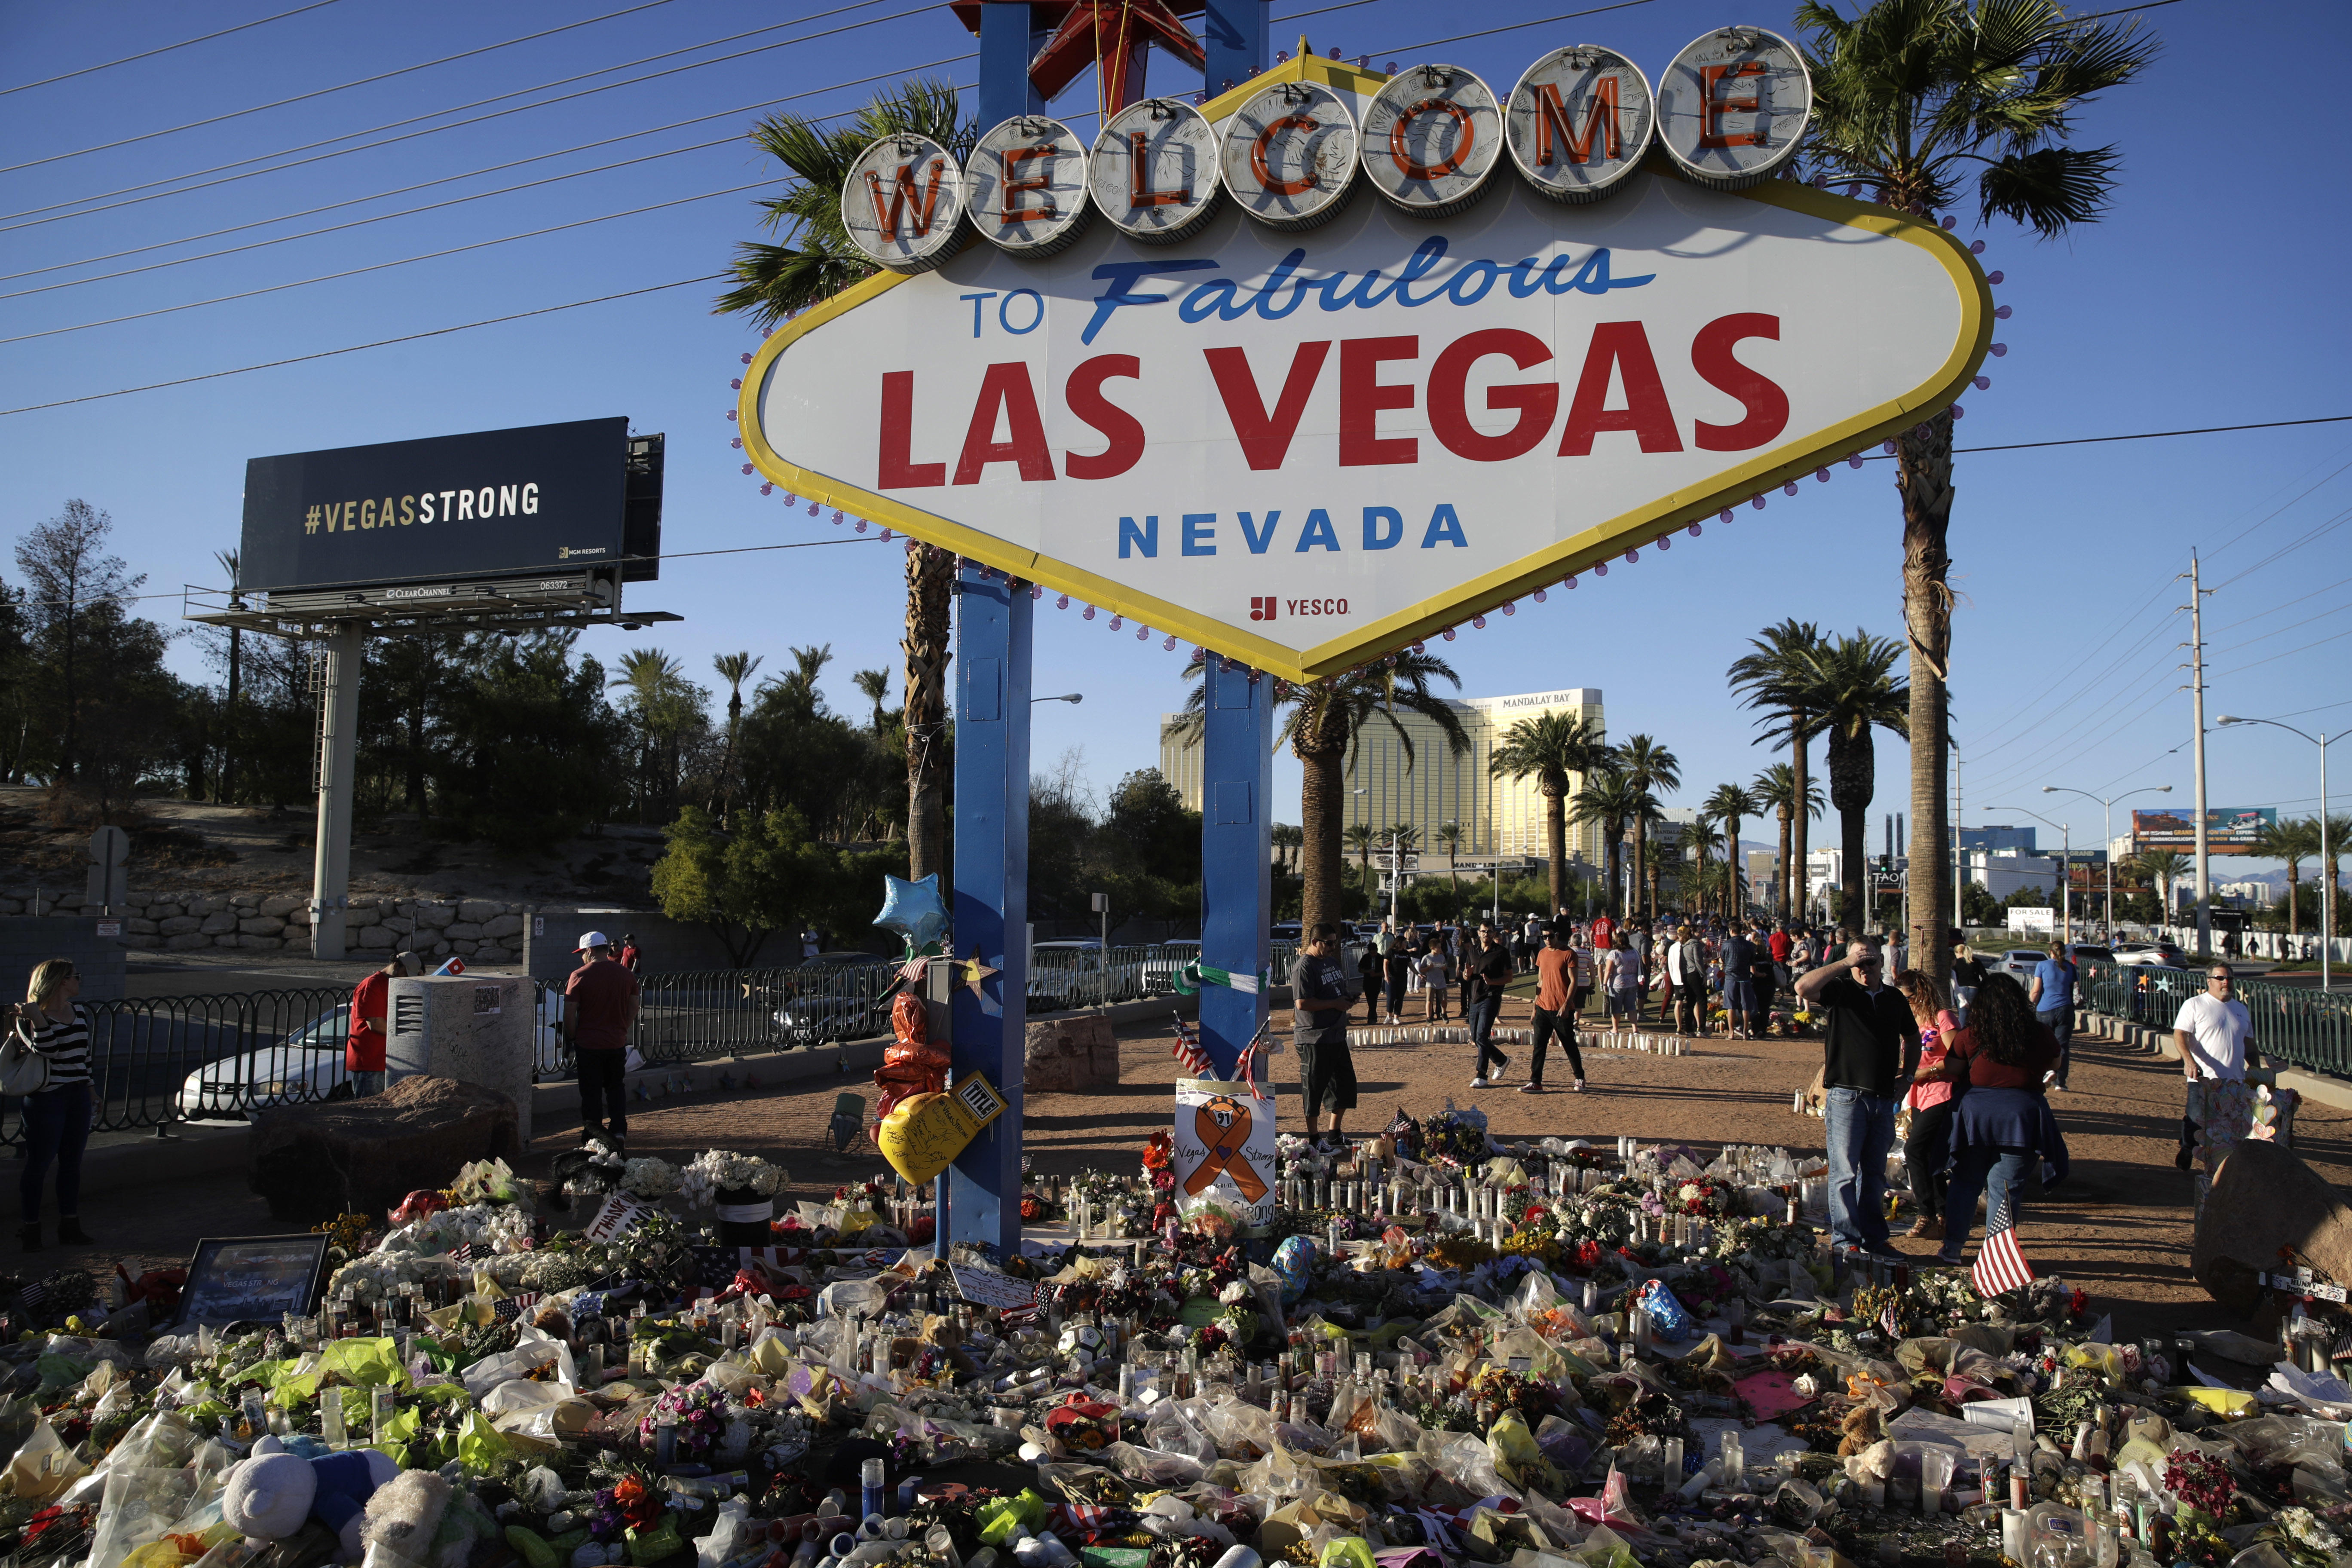 Lawsuits filed against Mandalay Bay, concert organizers, bump stock sellers - CBS News thumbnail